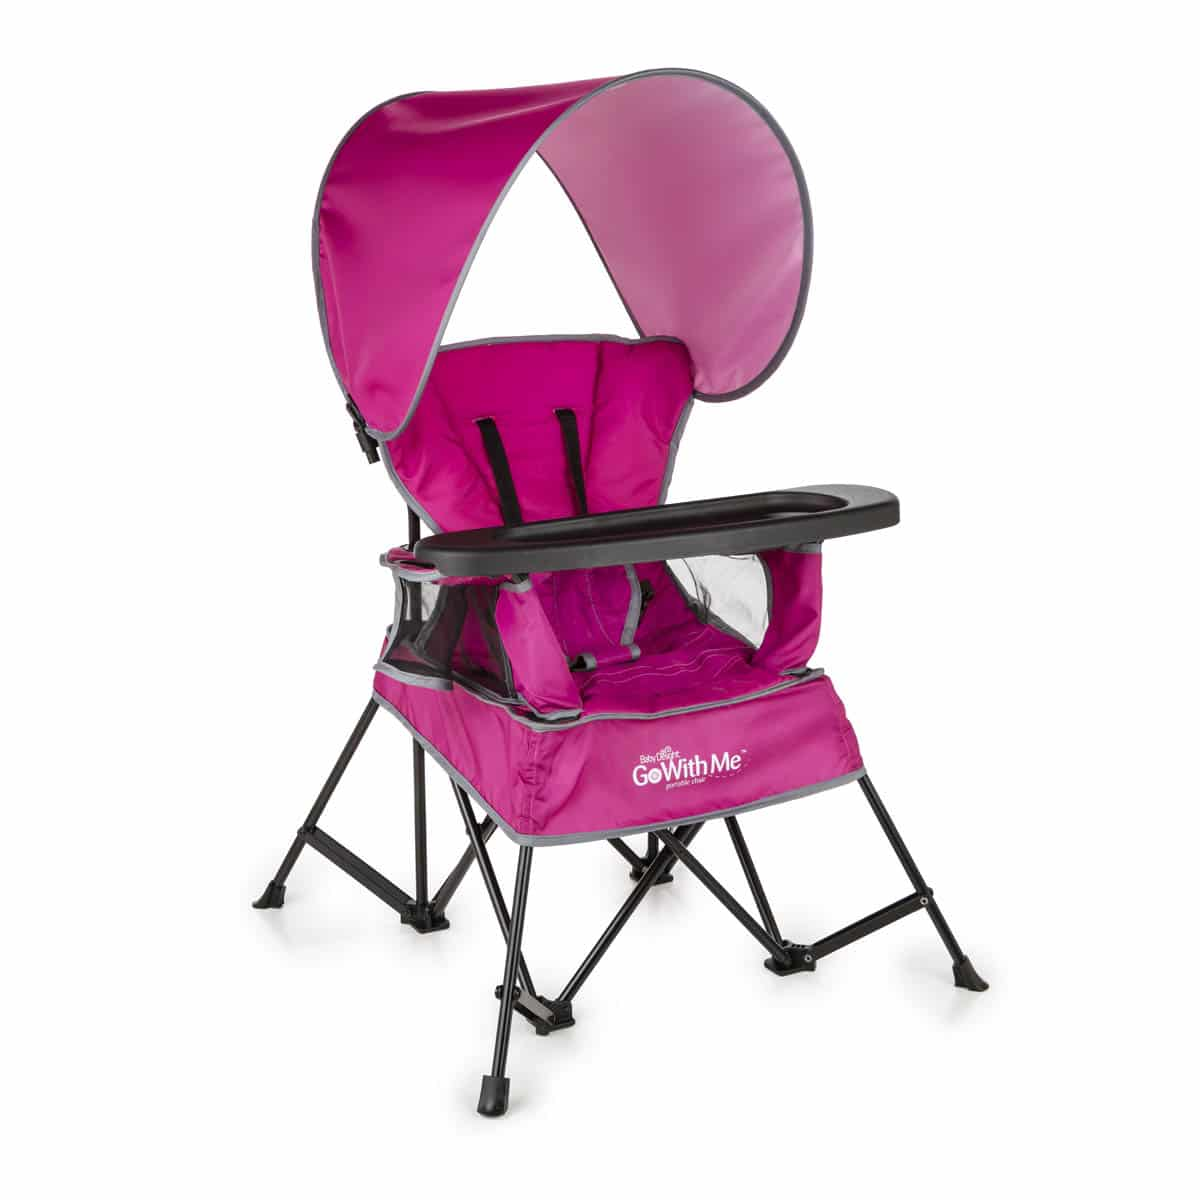 Baby Delight Go With Me Chair U2013 Pink